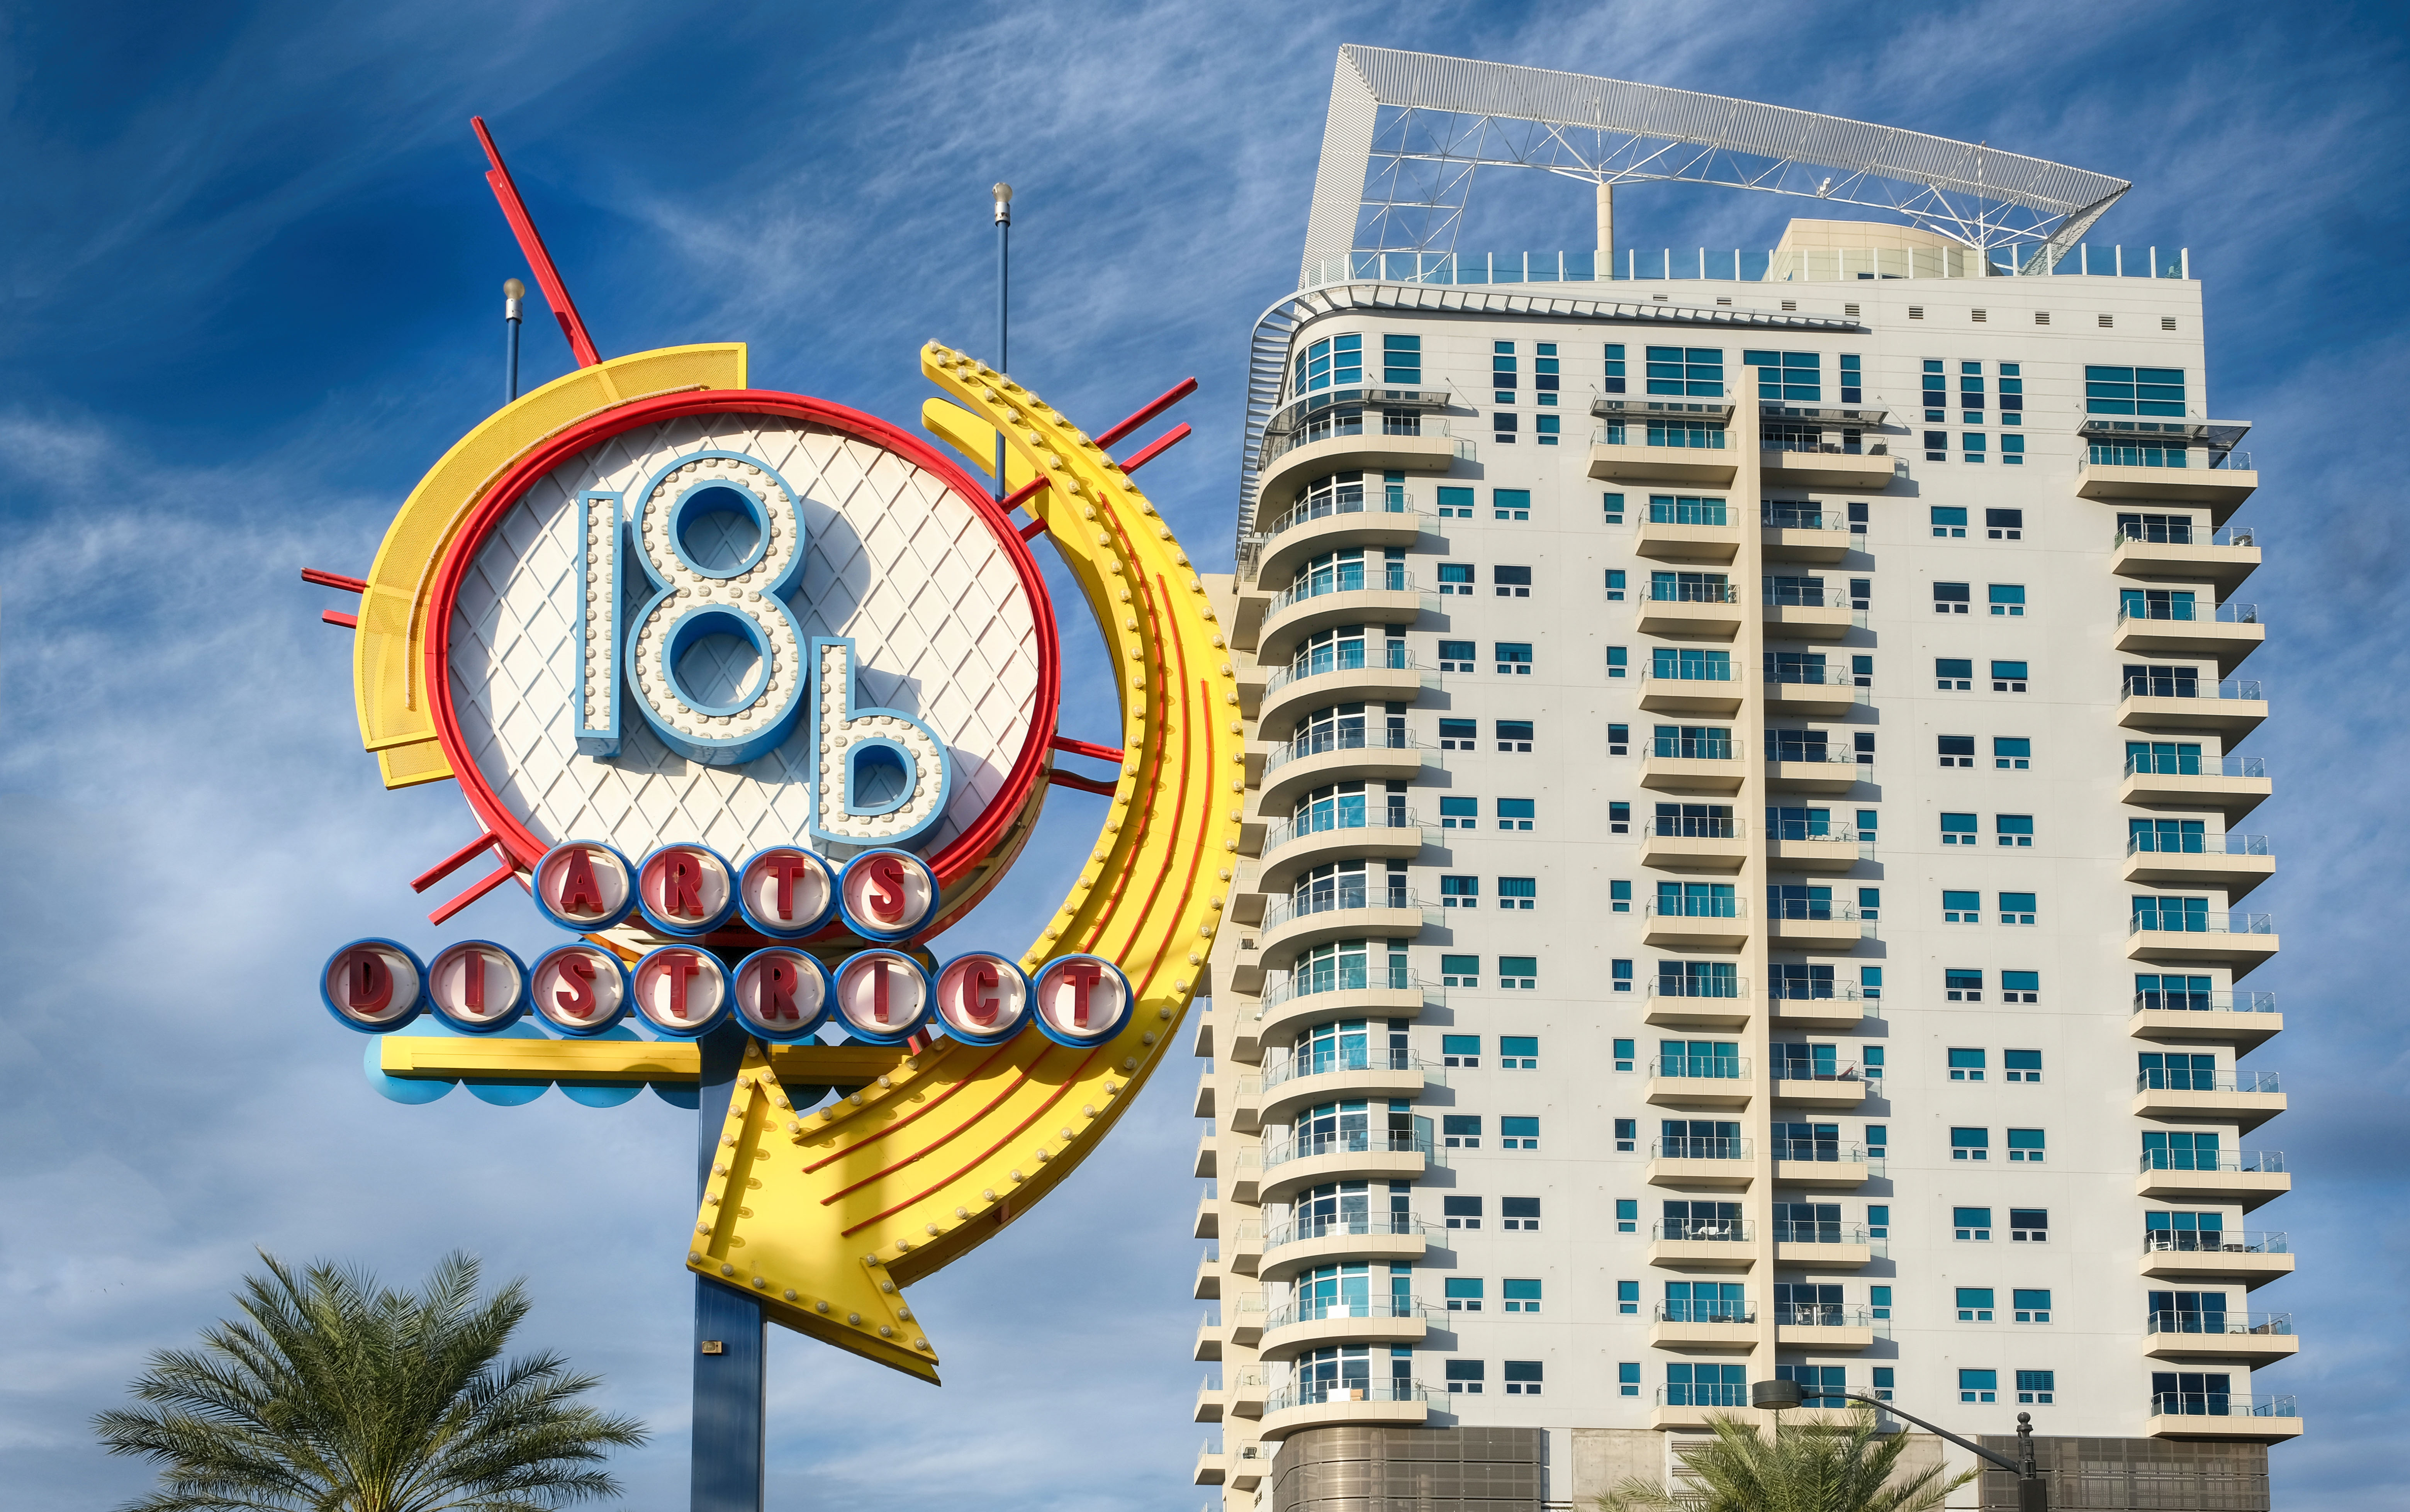 A round neon sign with an apartment tower in the background